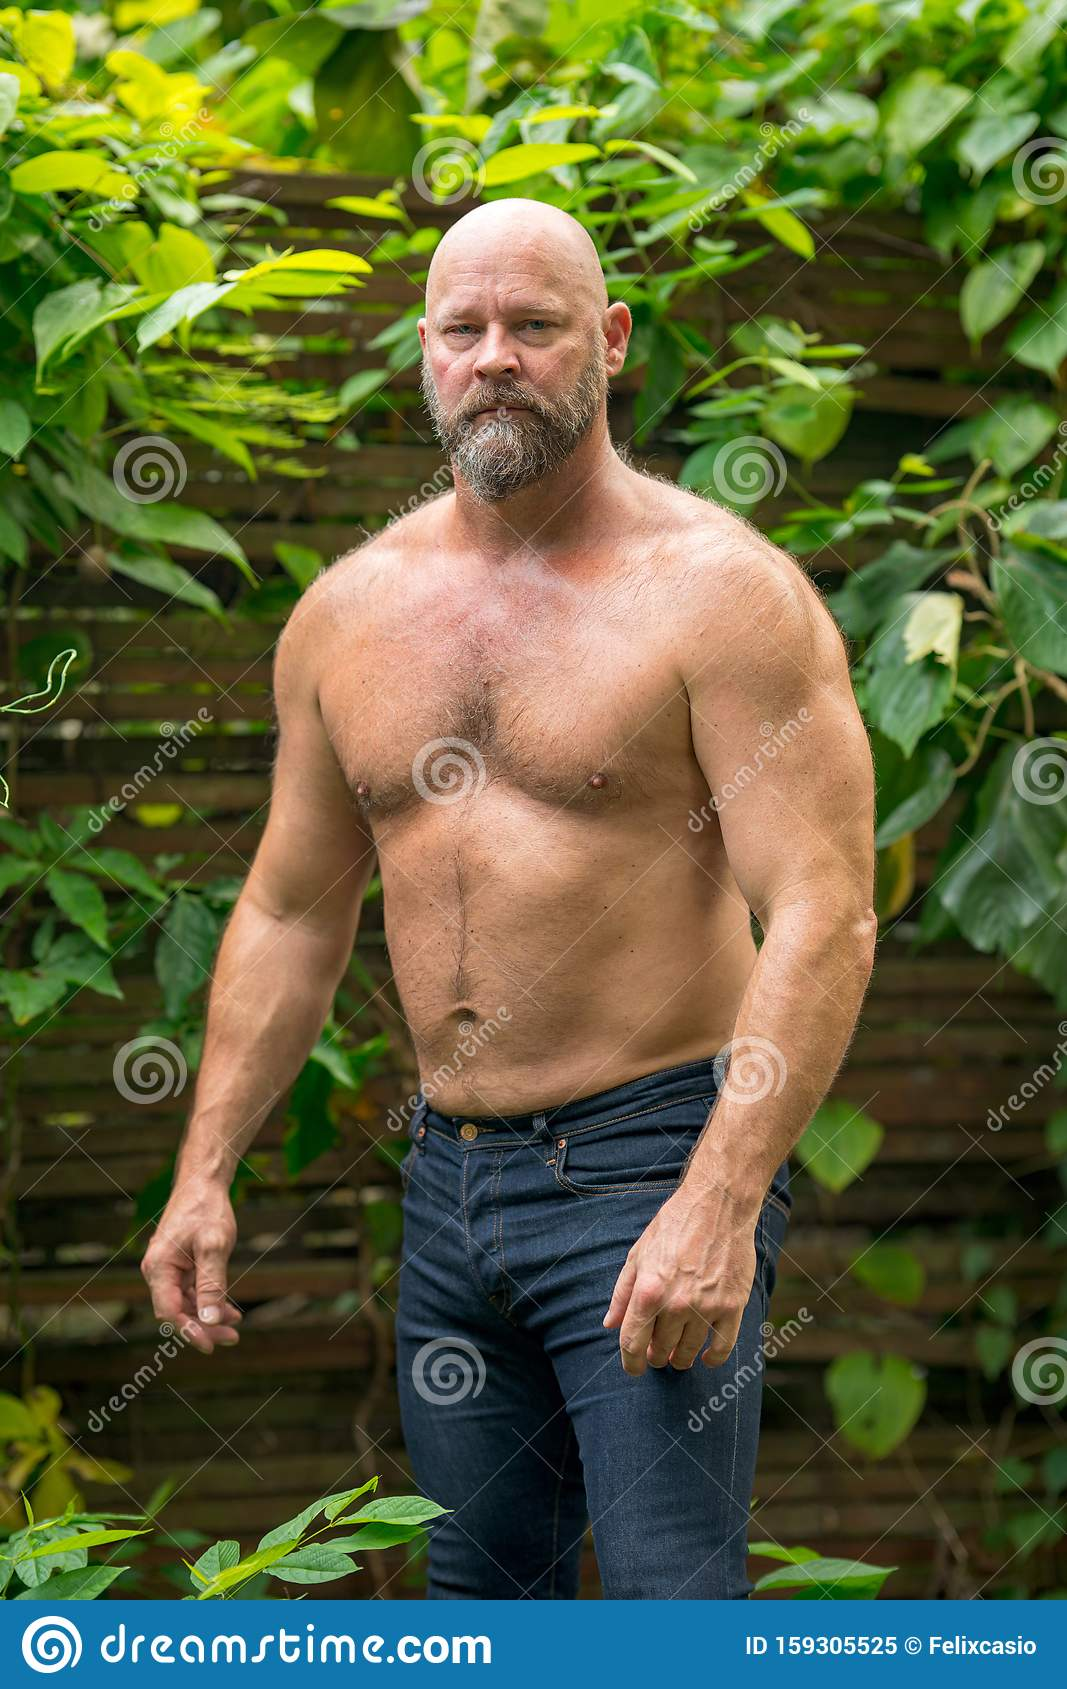 Handsome Male Model Posing Shirtless In The Garden